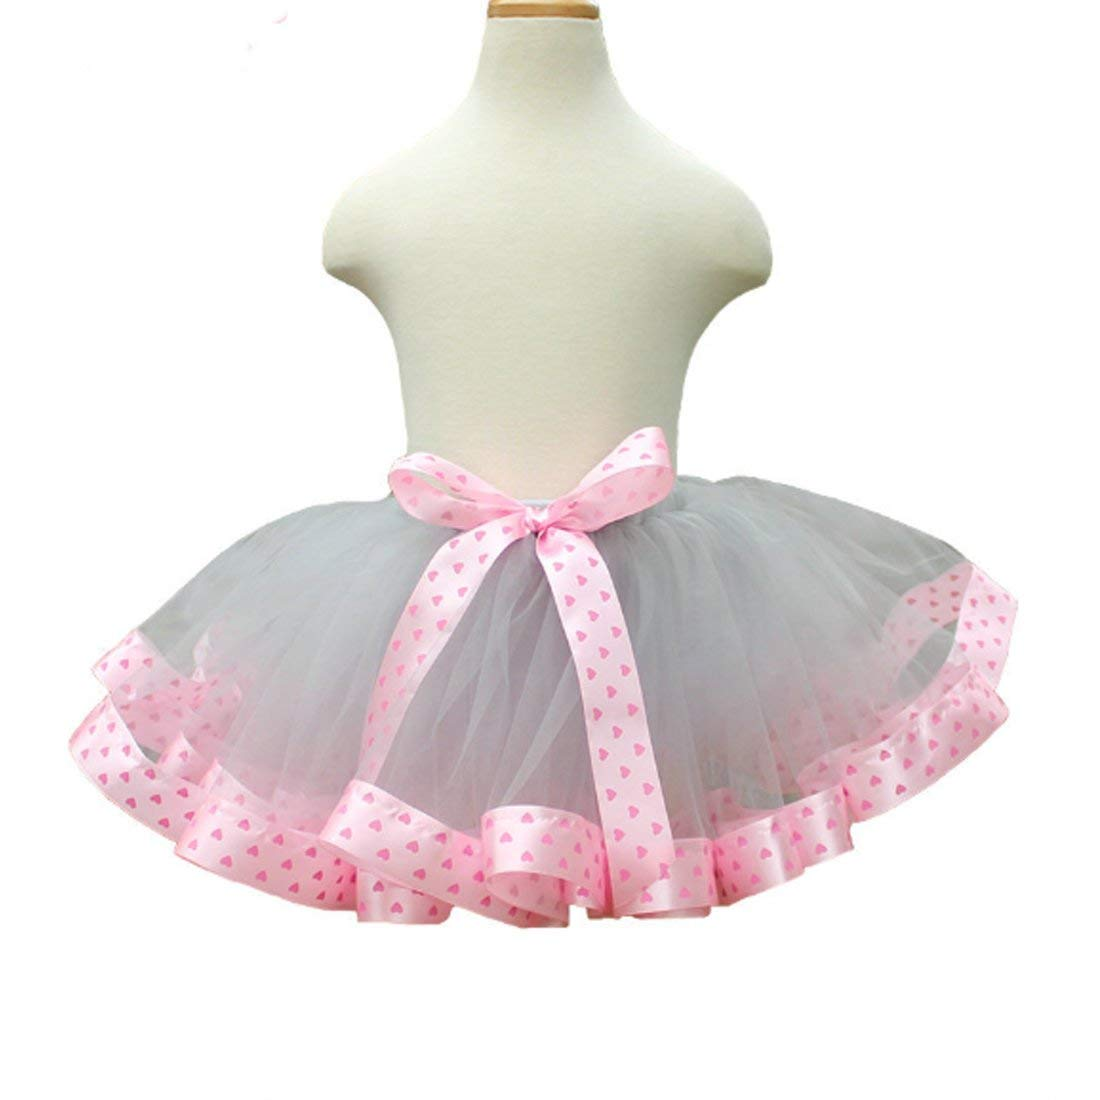 ef5551df4a0 Get Quotations · SHENLINQIJ Girl s Colorful Layered Ruffle Pink Tutu Tiered  Ballet Dance Skirt